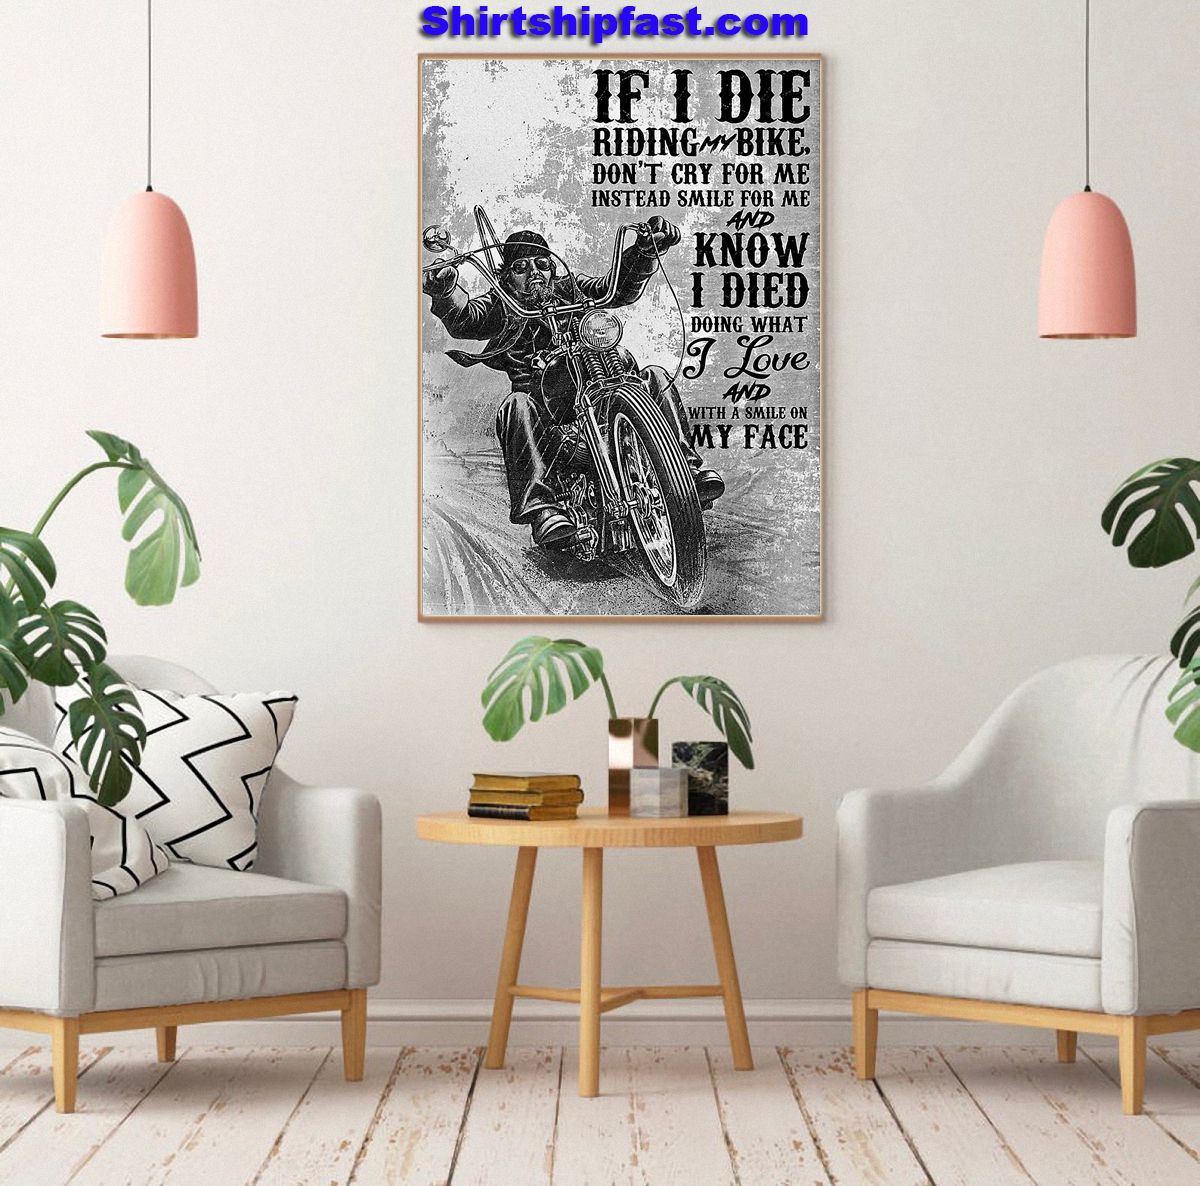 Motorcycle biker If I die riding bike don't cry for me instead smile for me poster - Picture 3